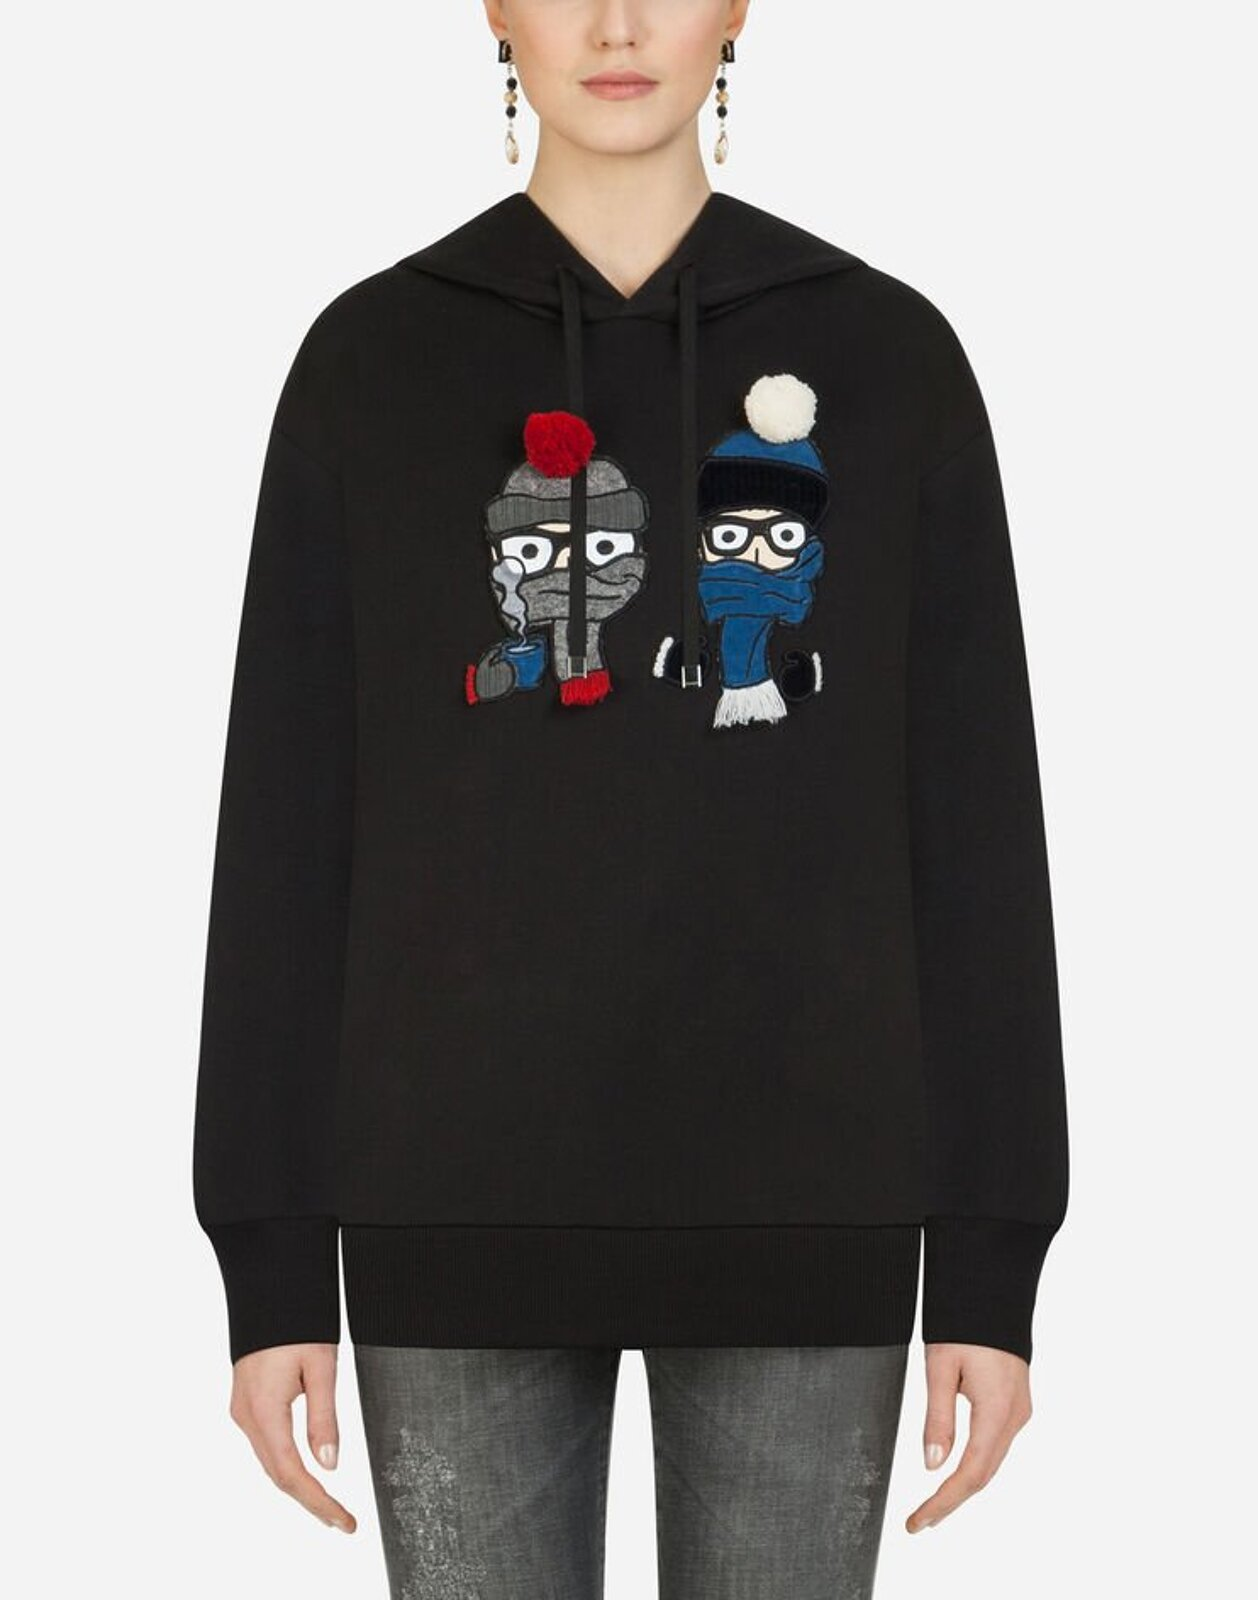 Hooded Sweatshirt With Designer Patches - Dolce & Gabbana